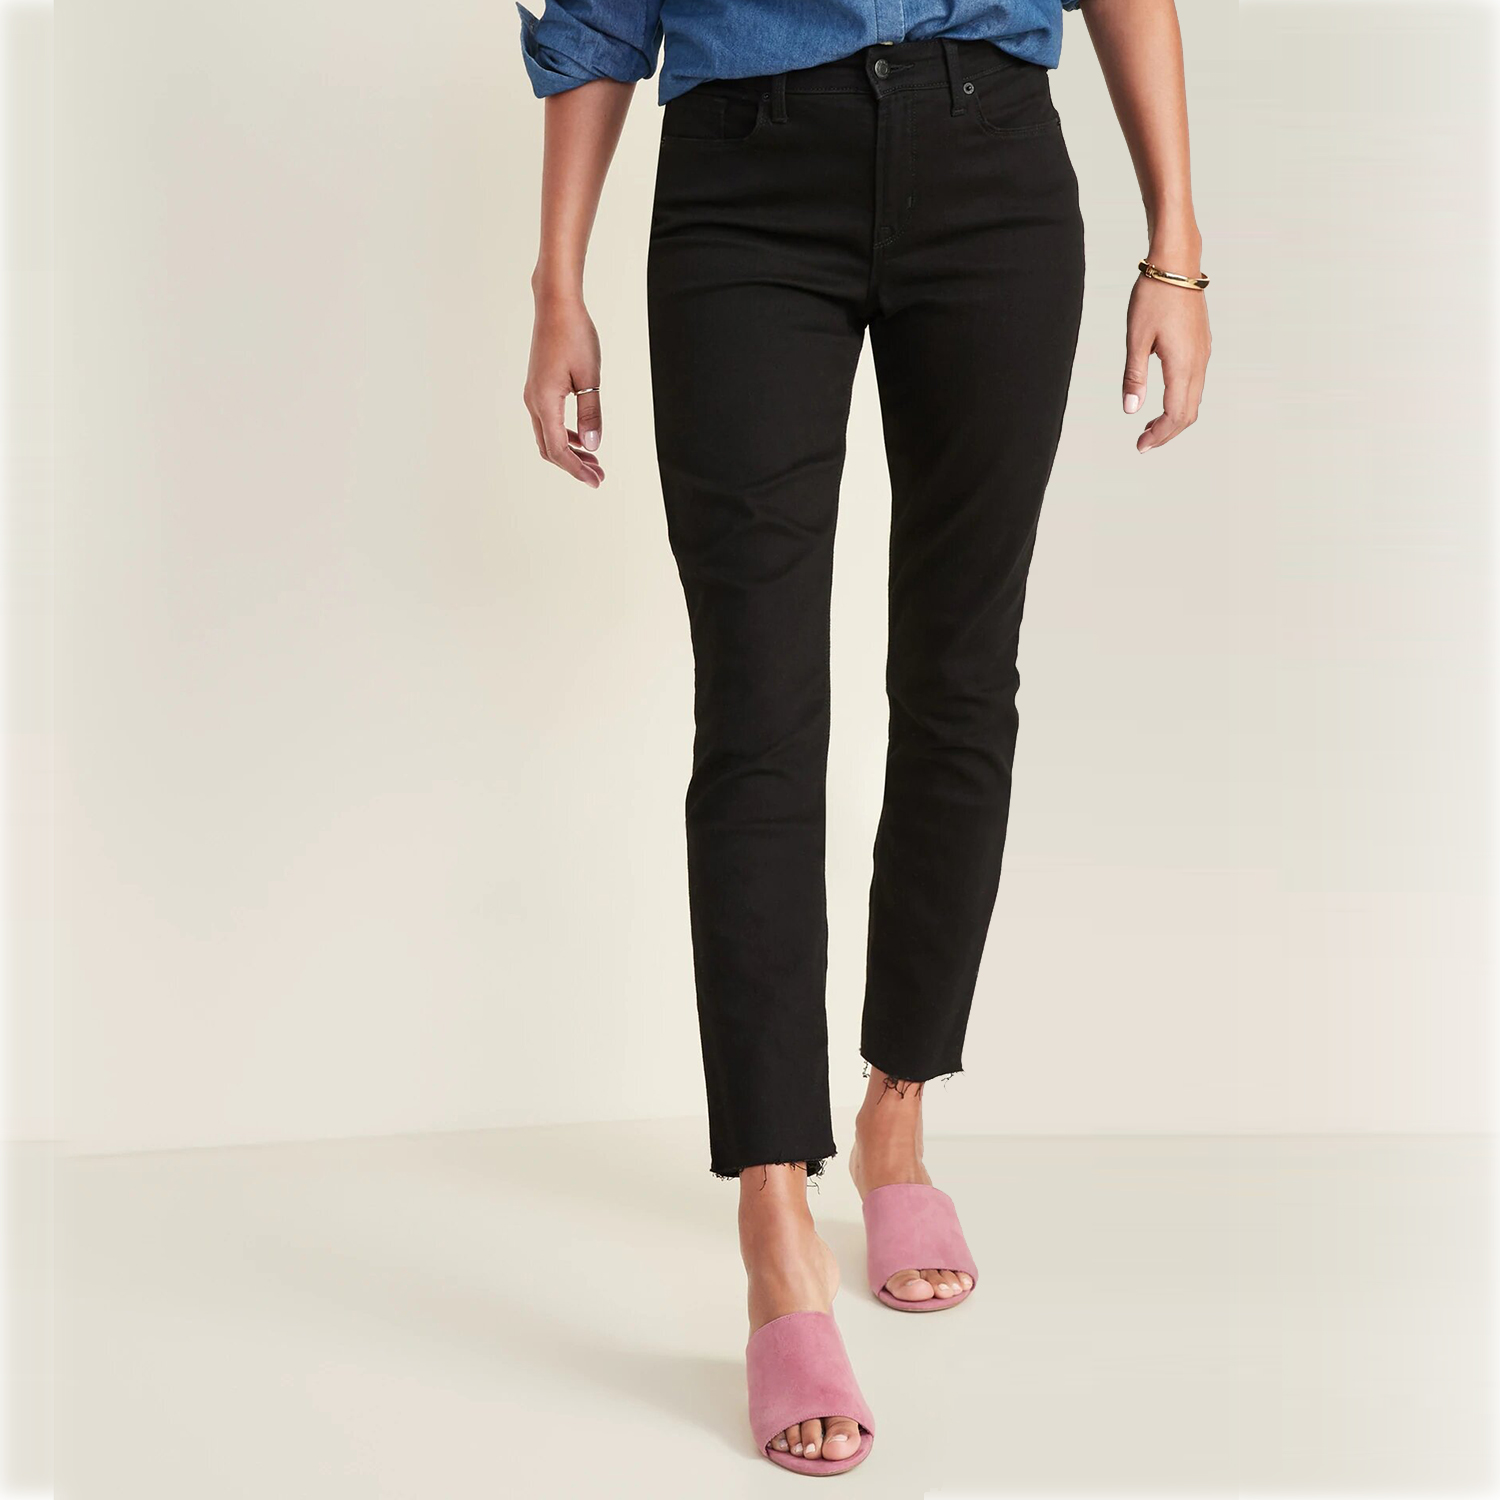 Old Navy High-Waisted Power Slim Straight Jeans